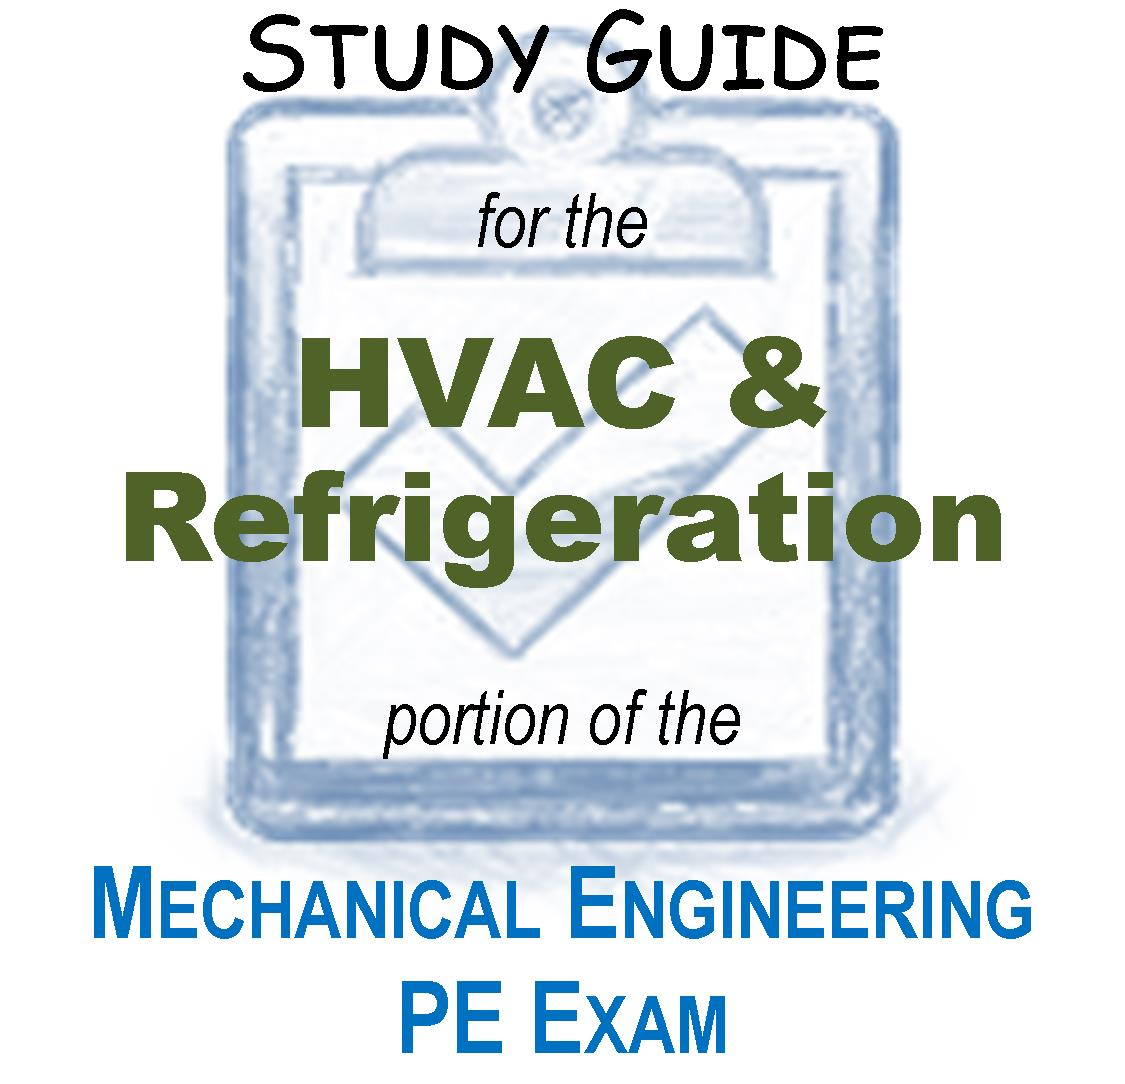 mechanical engineering pe exam the mechanical engineering pe exam study guide hvac and refrigeration by jeff setzer pe provides sample problems extensive solution examples and